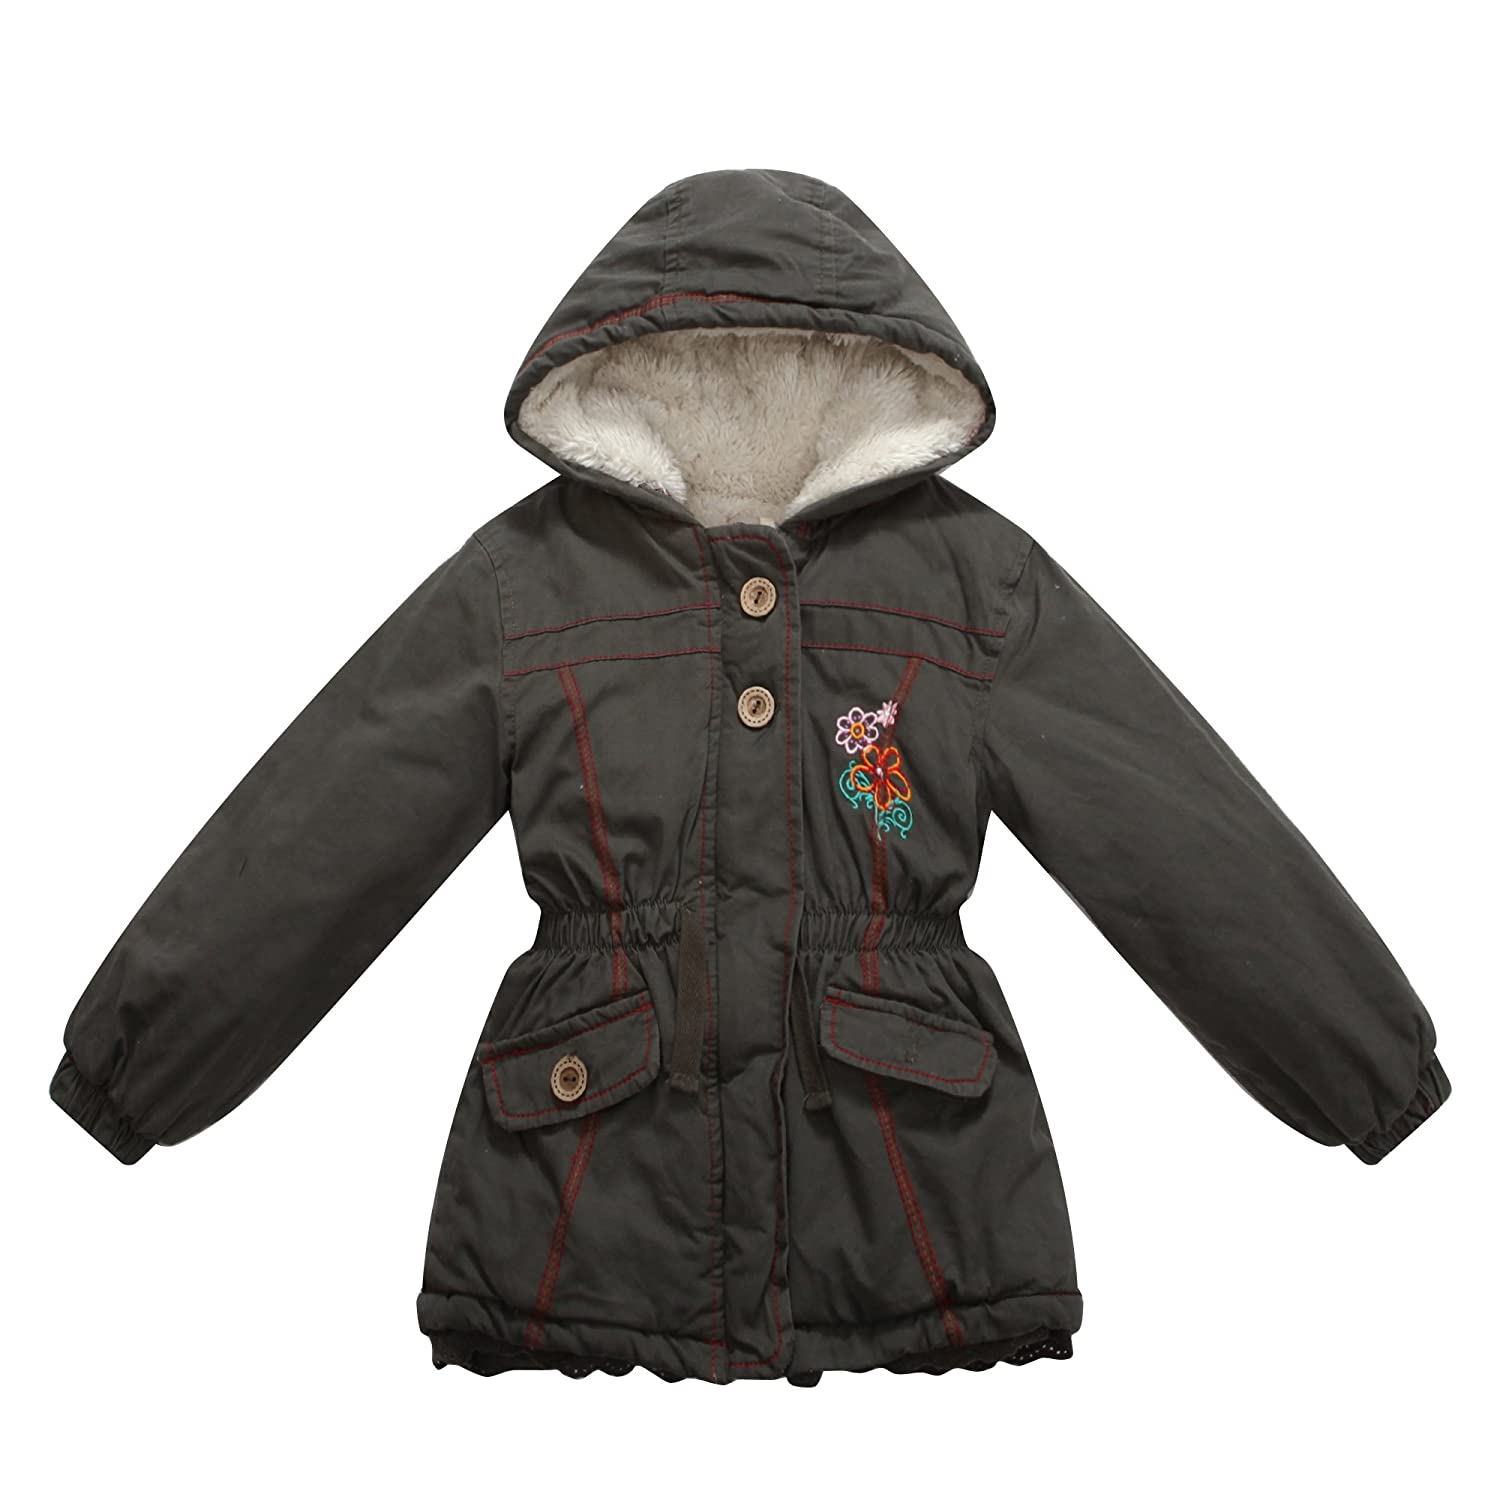 Richie House Little Girls Cotton Padded Jacket Rh0828